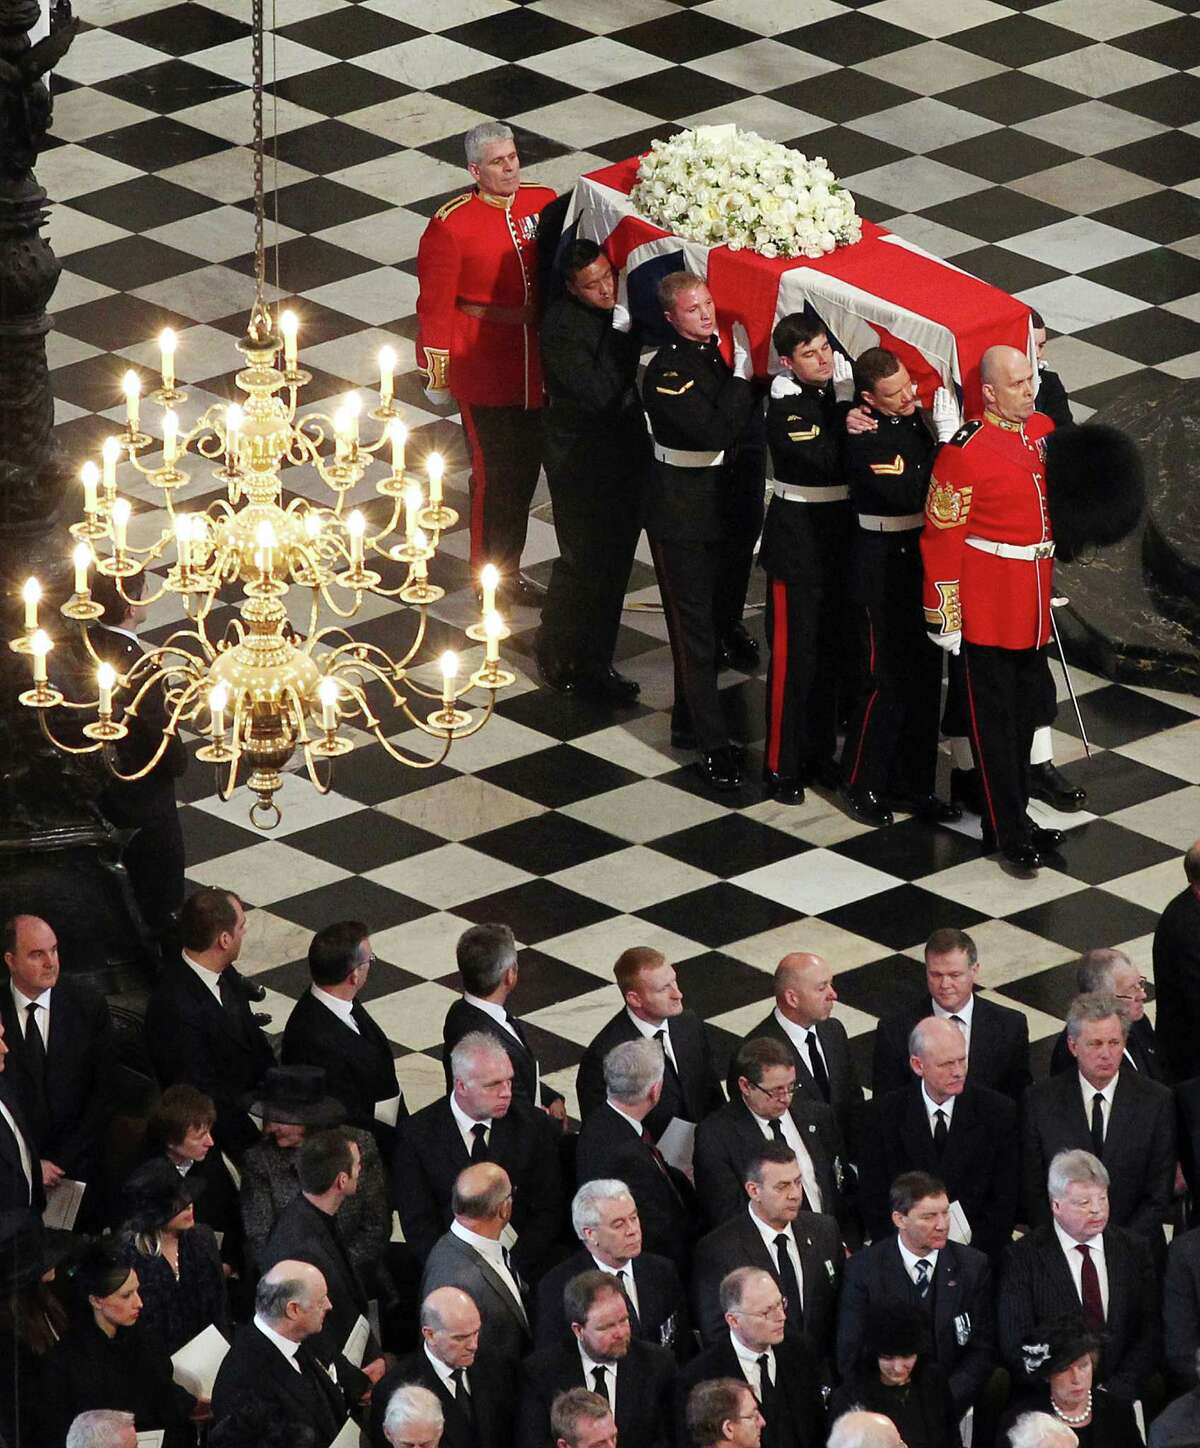 LONDON, UNITED KINGDOM - APRIL 17: The coffin bearing the body of Baroness Margaret Thatcher is carried into St Paul's Cathedral on April 17, 2013 in London, England. Dignitaries from around the world today join Queen Elizabeth II and Prince Philip, Duke of Edinburgh as the United Kingdom pays tribute to former Prime Minister Baroness Thatcher during a Ceremonial funeral with military honours at St Paul's Cathedral. Lady Thatcher, who died last week, was the first British female Prime Minister and served from 1979 to 1990.